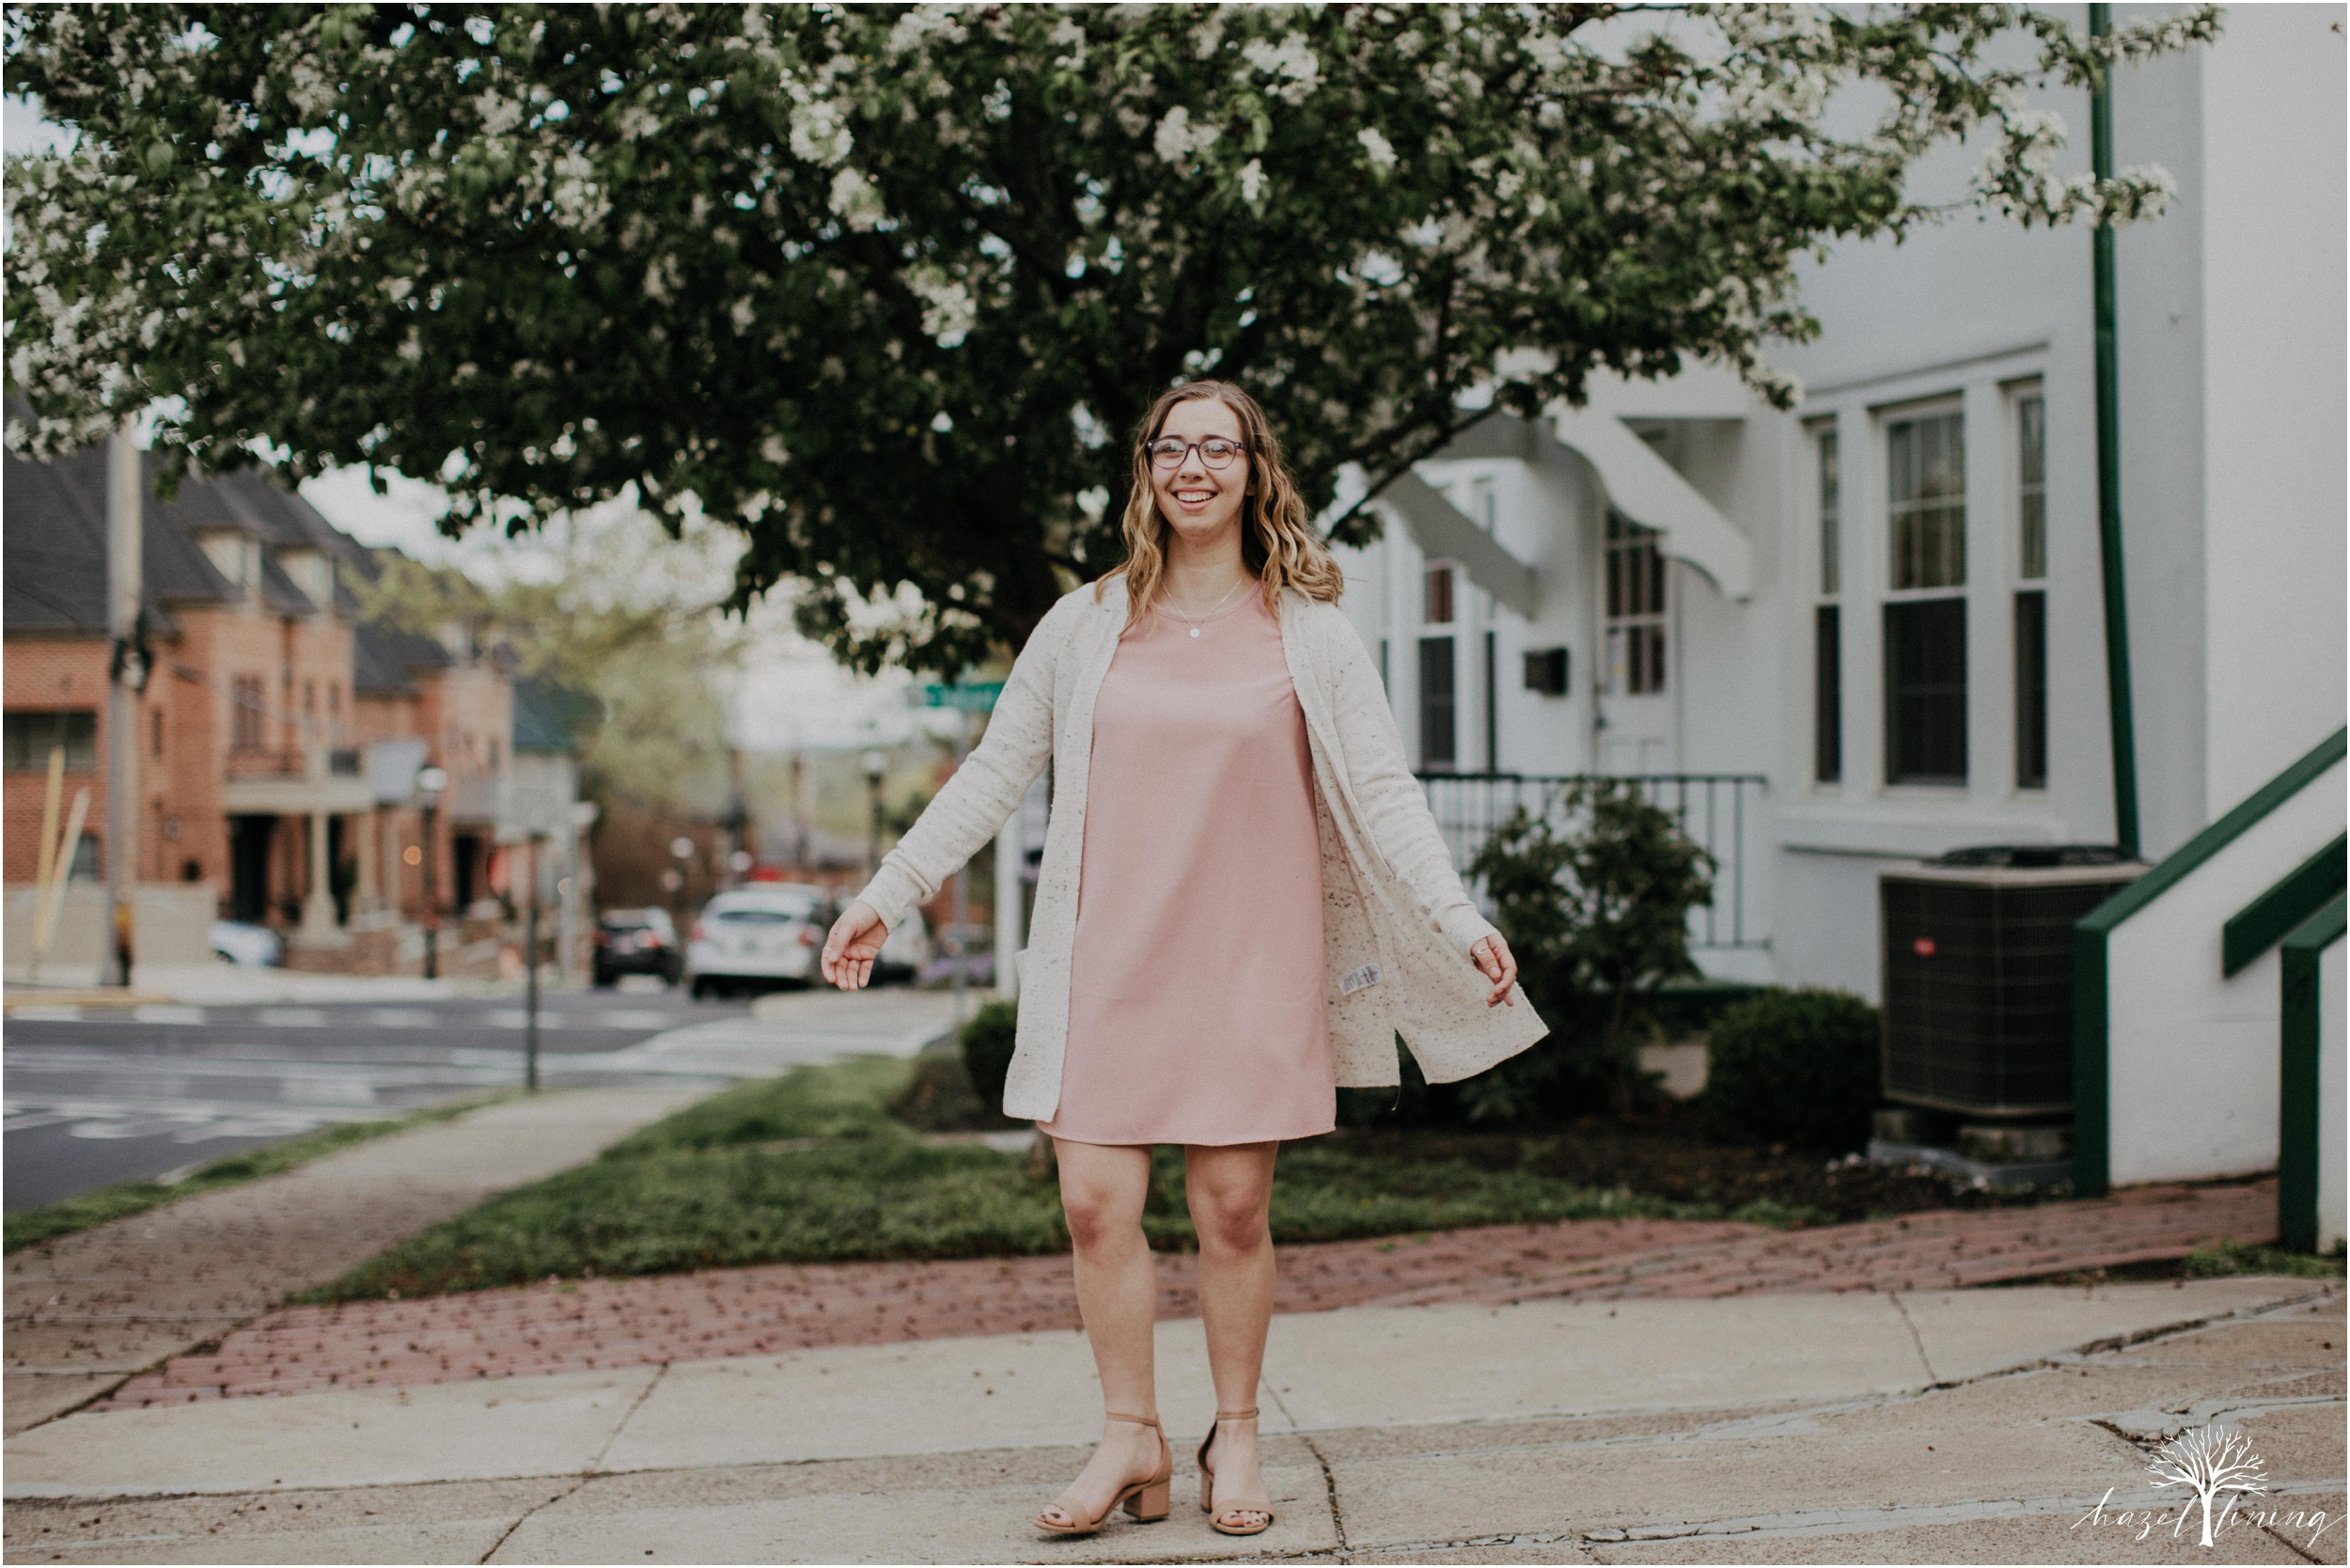 maddie-kiser-senior-portrait-session-doylestown-pennsylvania-spring-hazel-lining-photography-destination-elopement-wedding-engagement-photography-year-in-review_0033.jpg